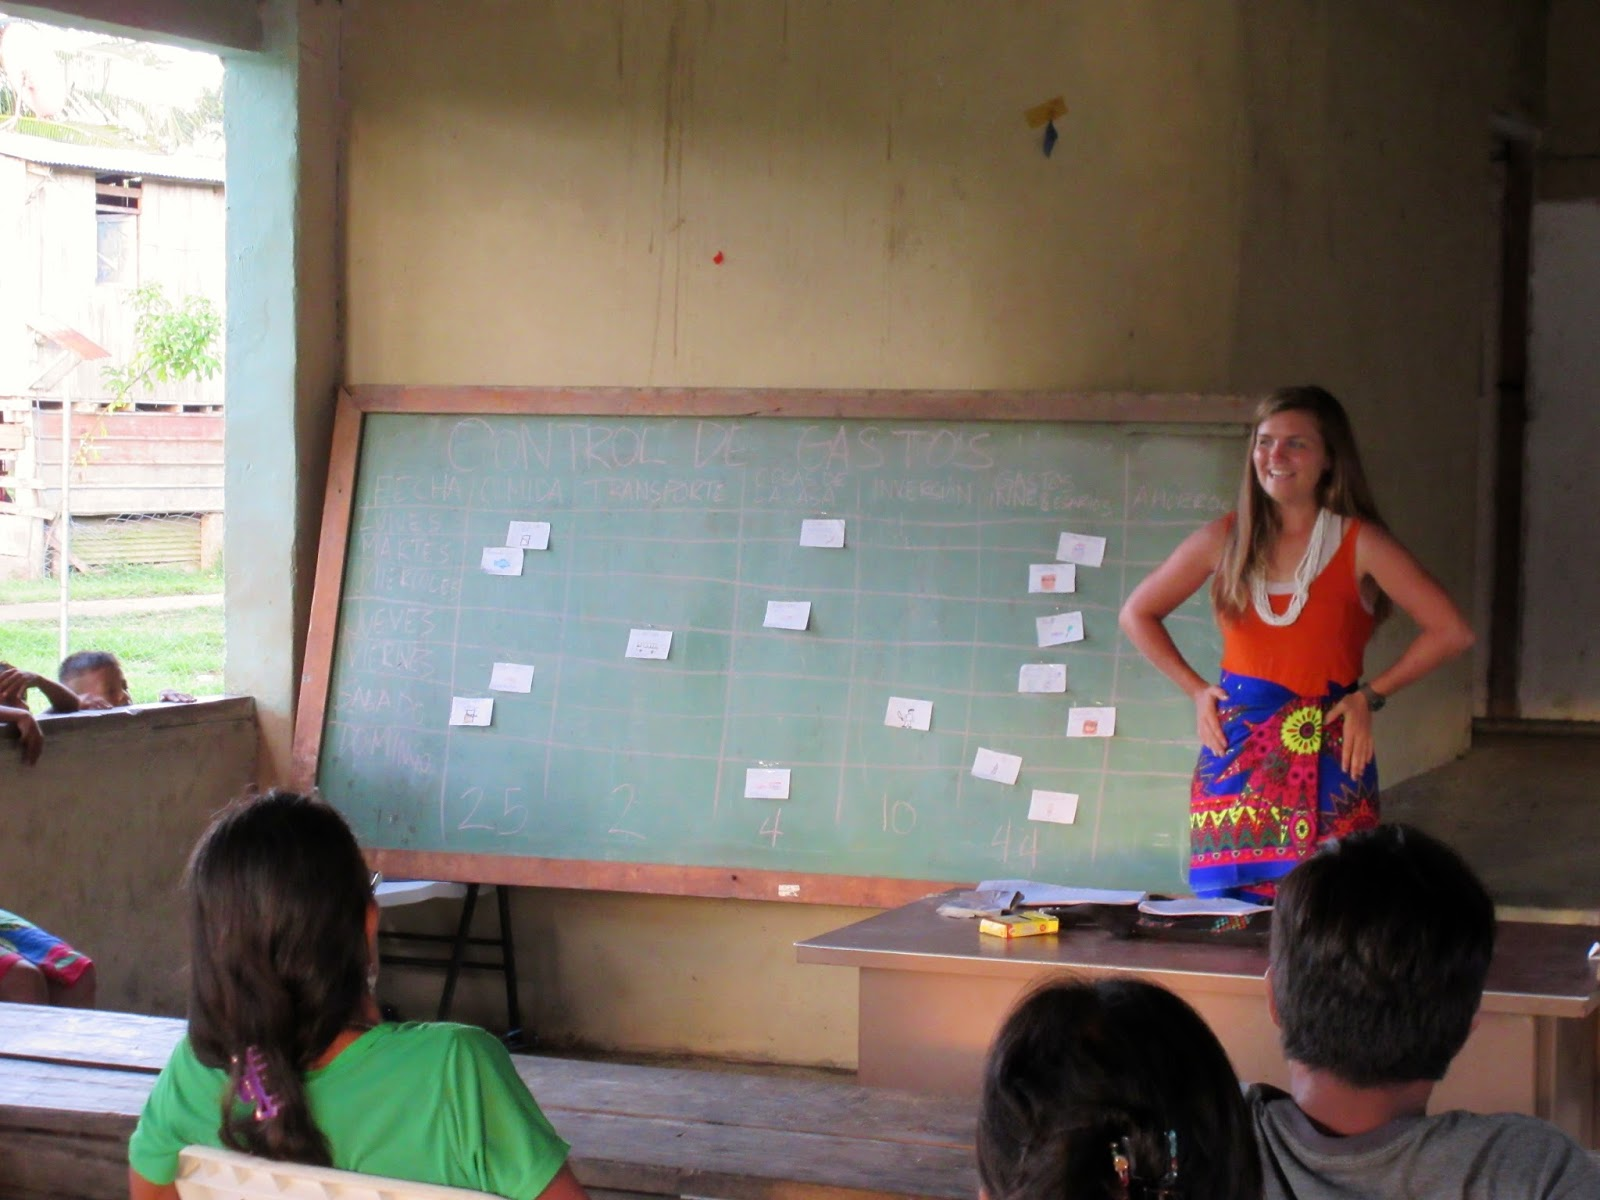 Abby Bryant teaches business in Darien, Panama